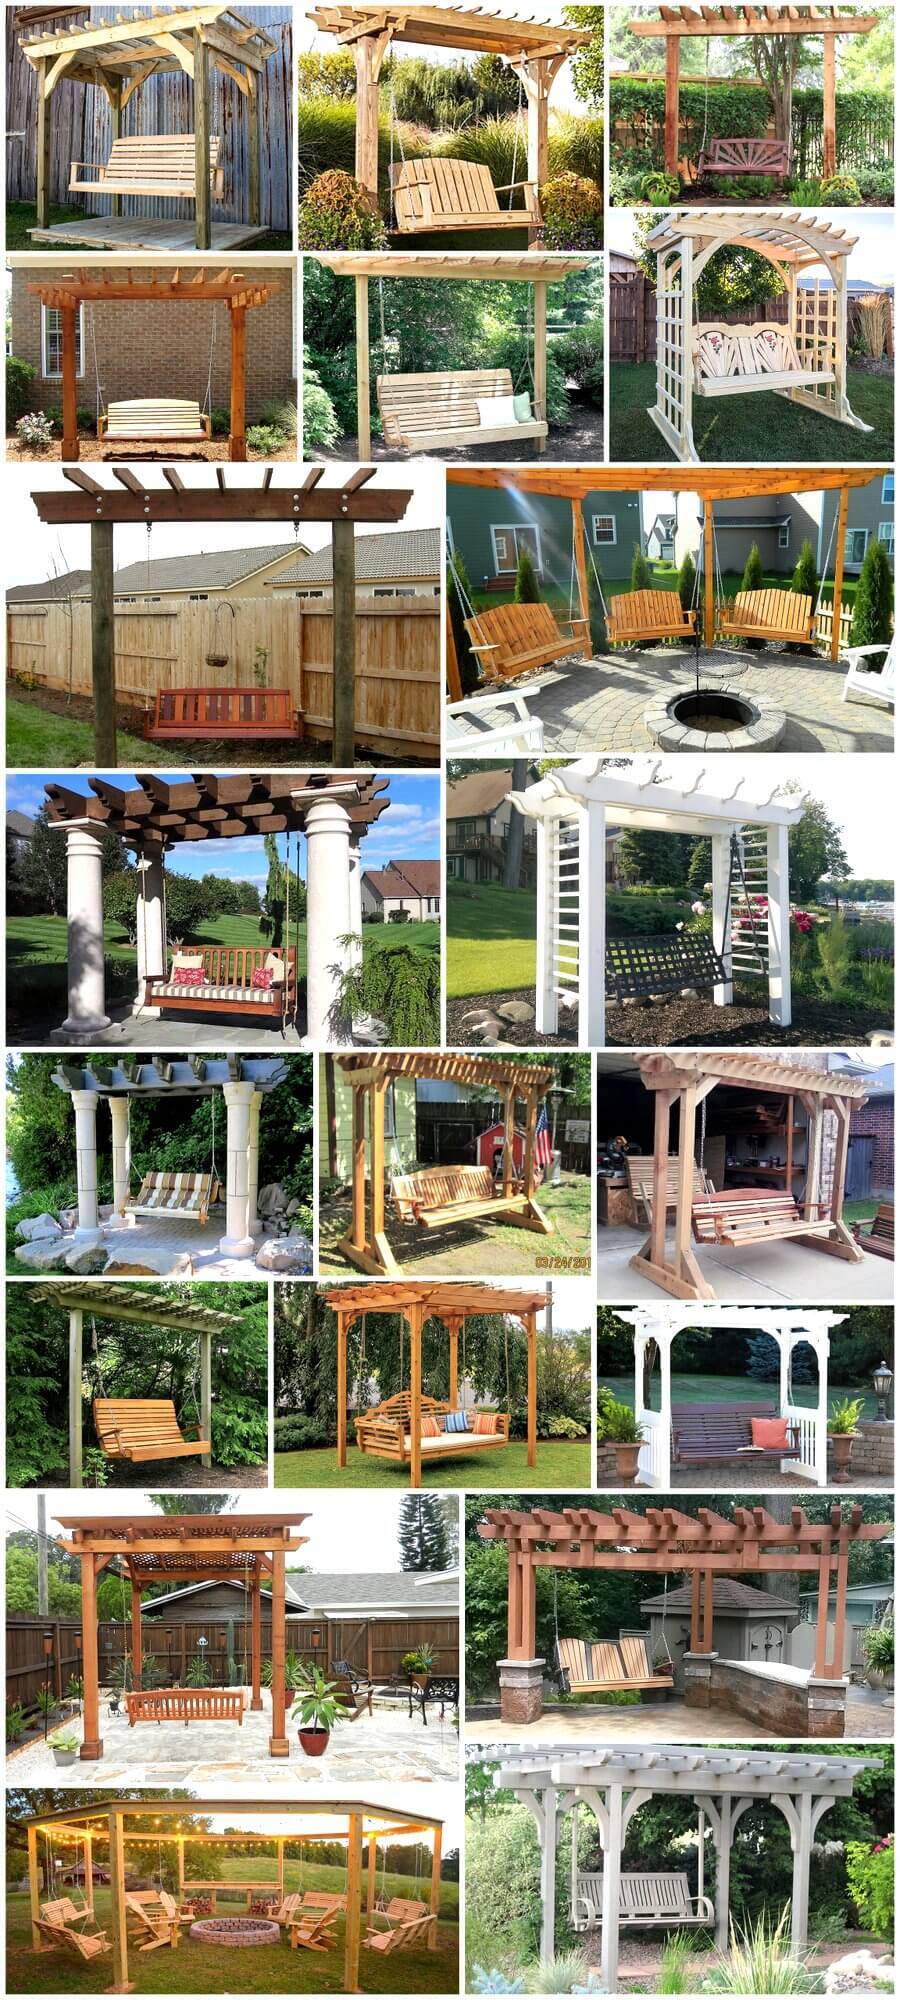 Have Your Ever Thought of Adding Swing to Your Pergola